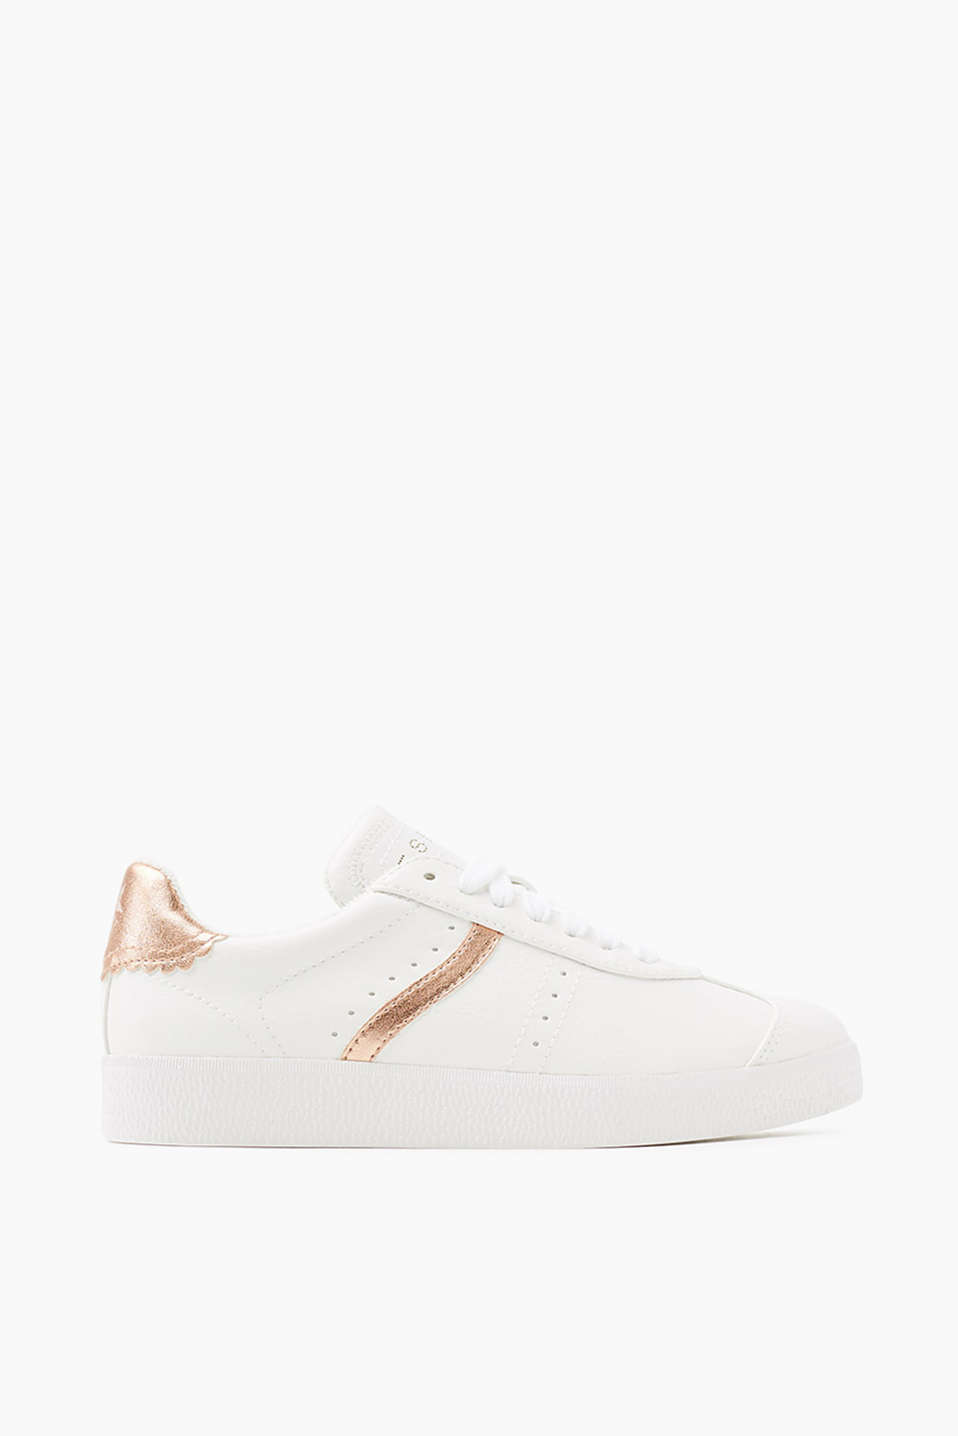 With a distinctive rubber outsole: lace-up trainers with rose gold details in faux leather